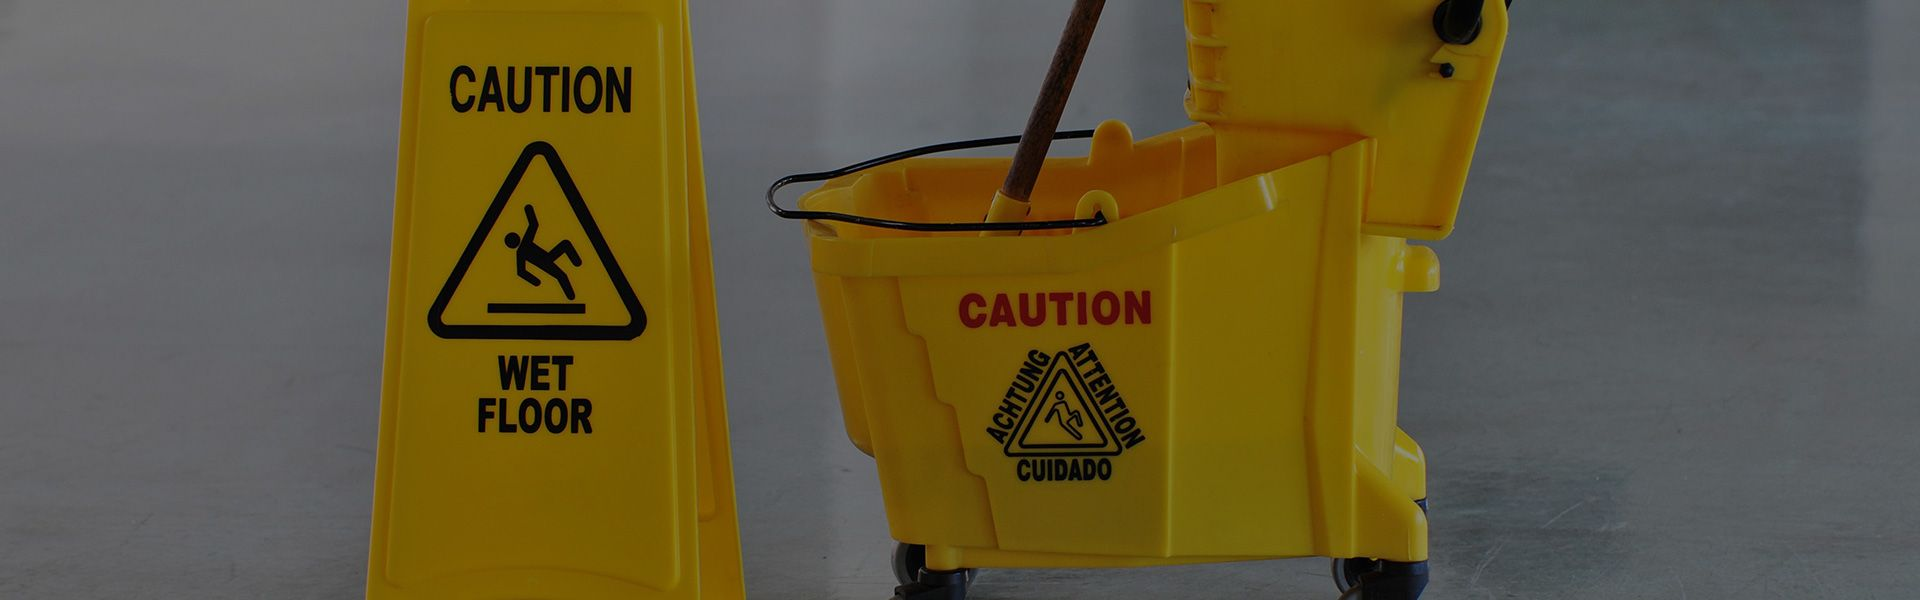 mop bucket and sign